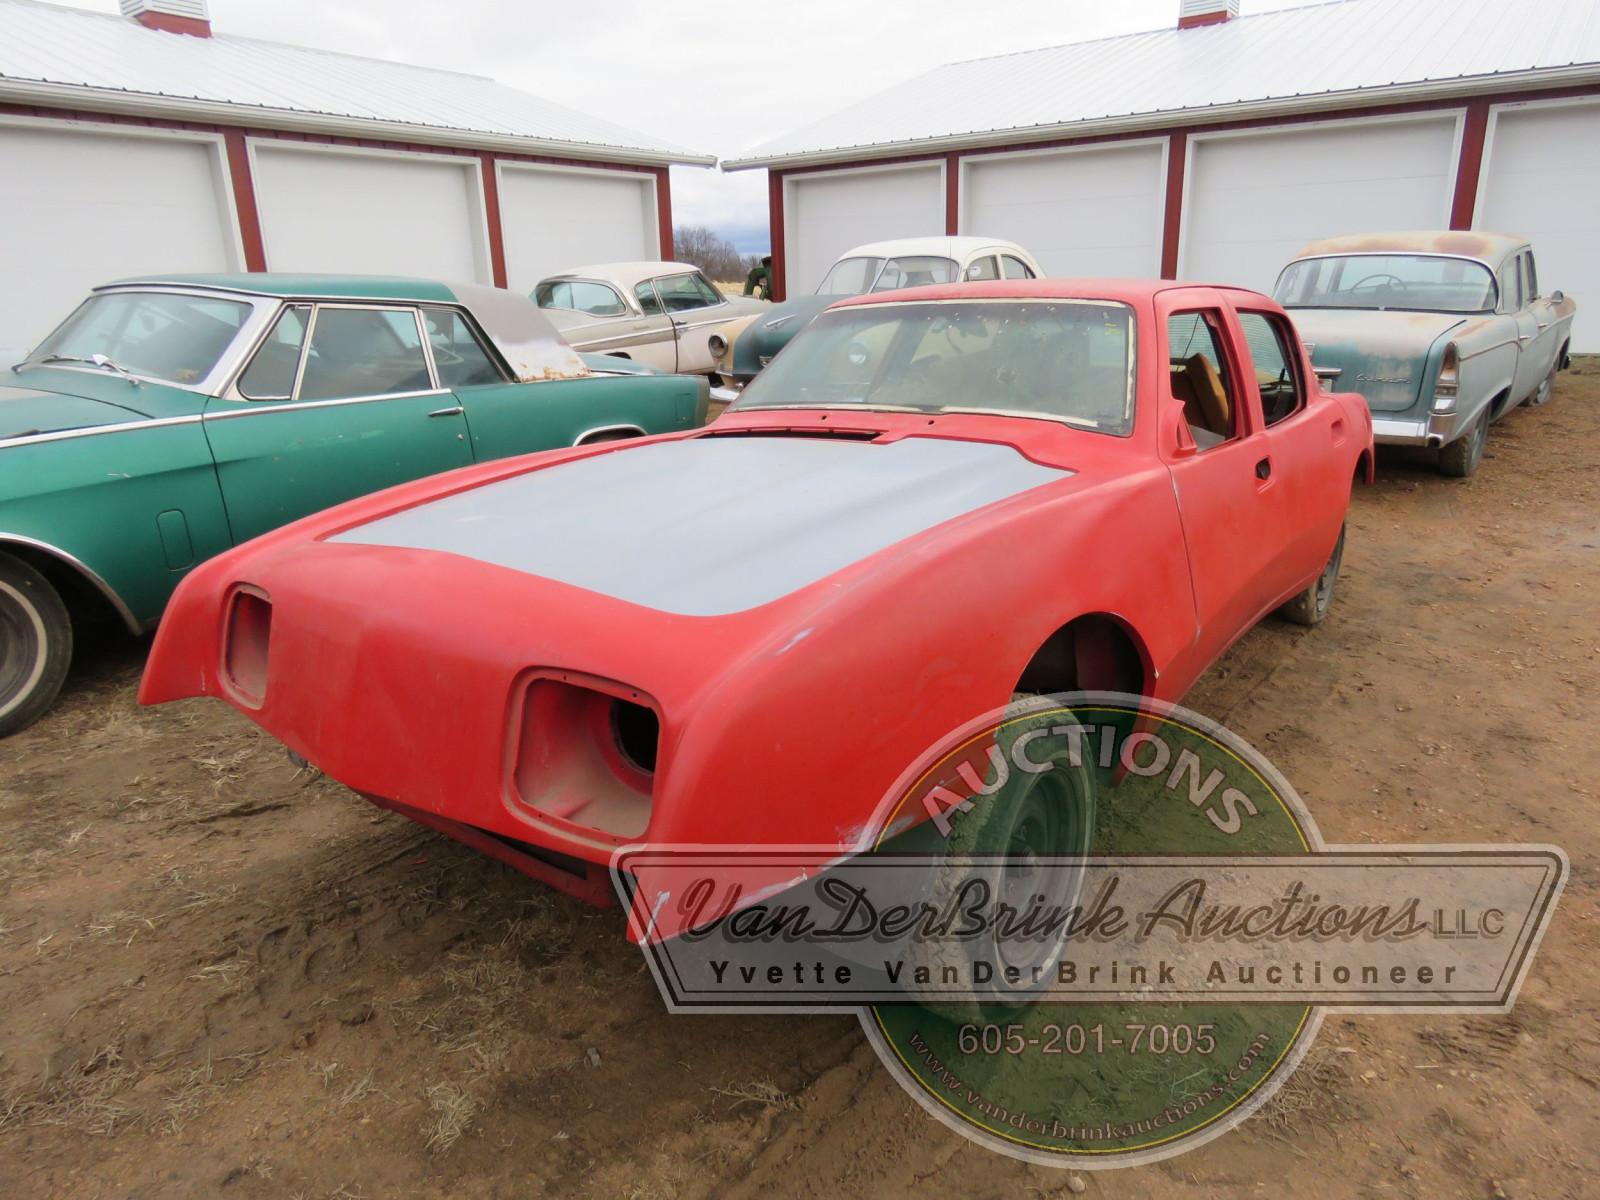 1990 Studebaker Avanti 4dr Sedan Project - Image 1